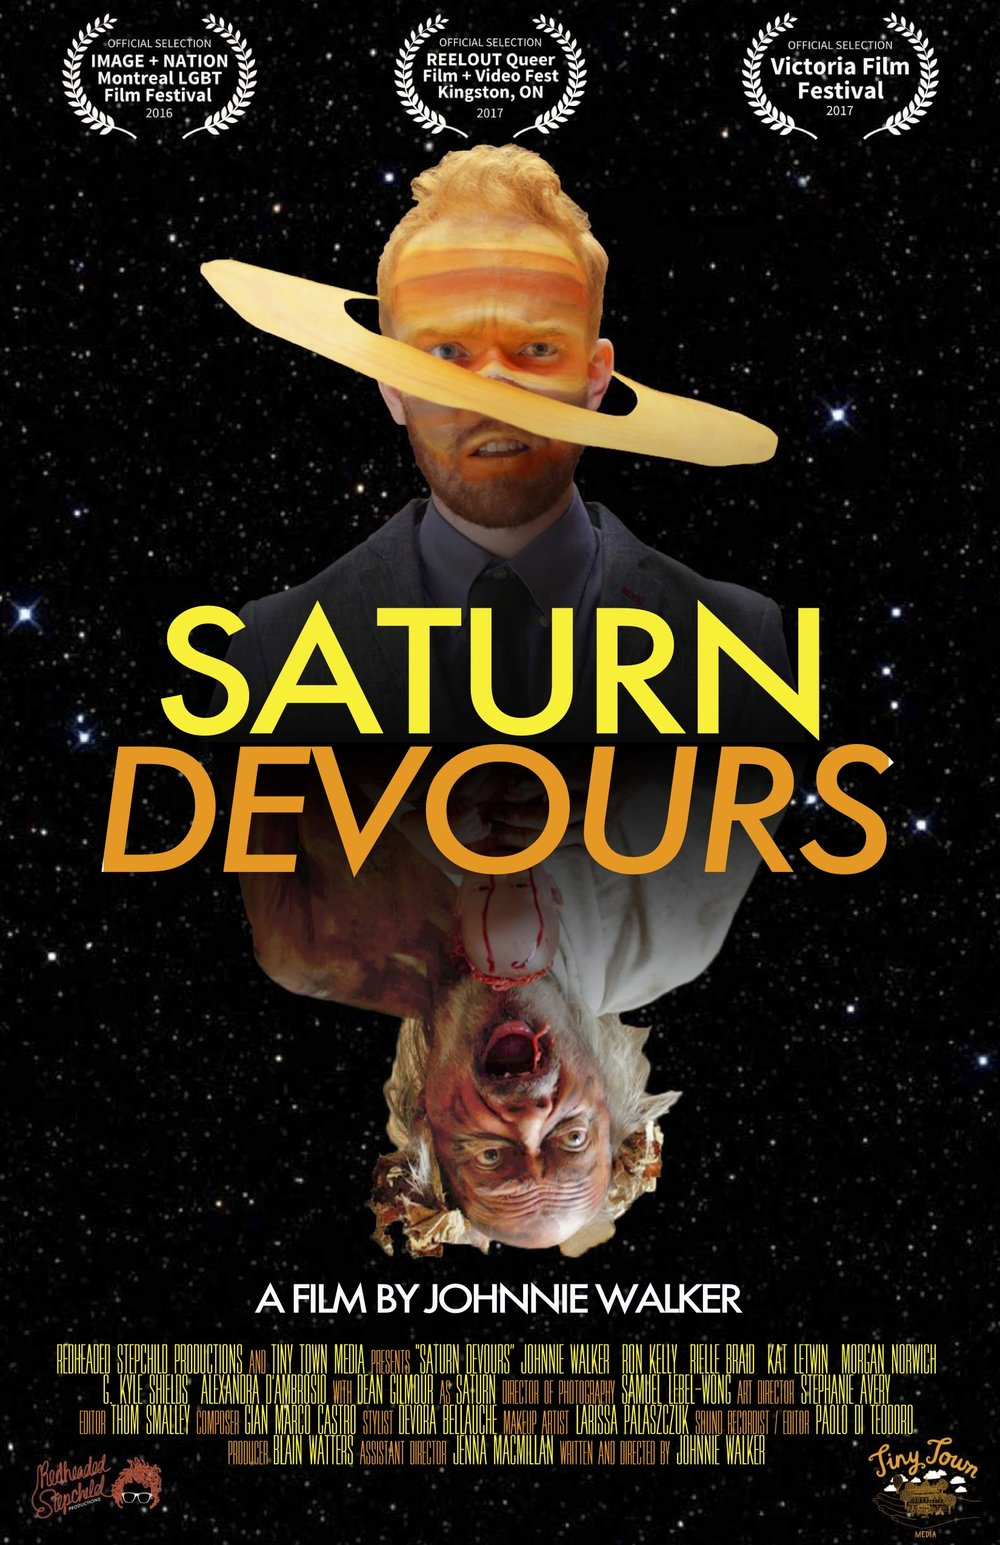 Saturn Devours movie poster